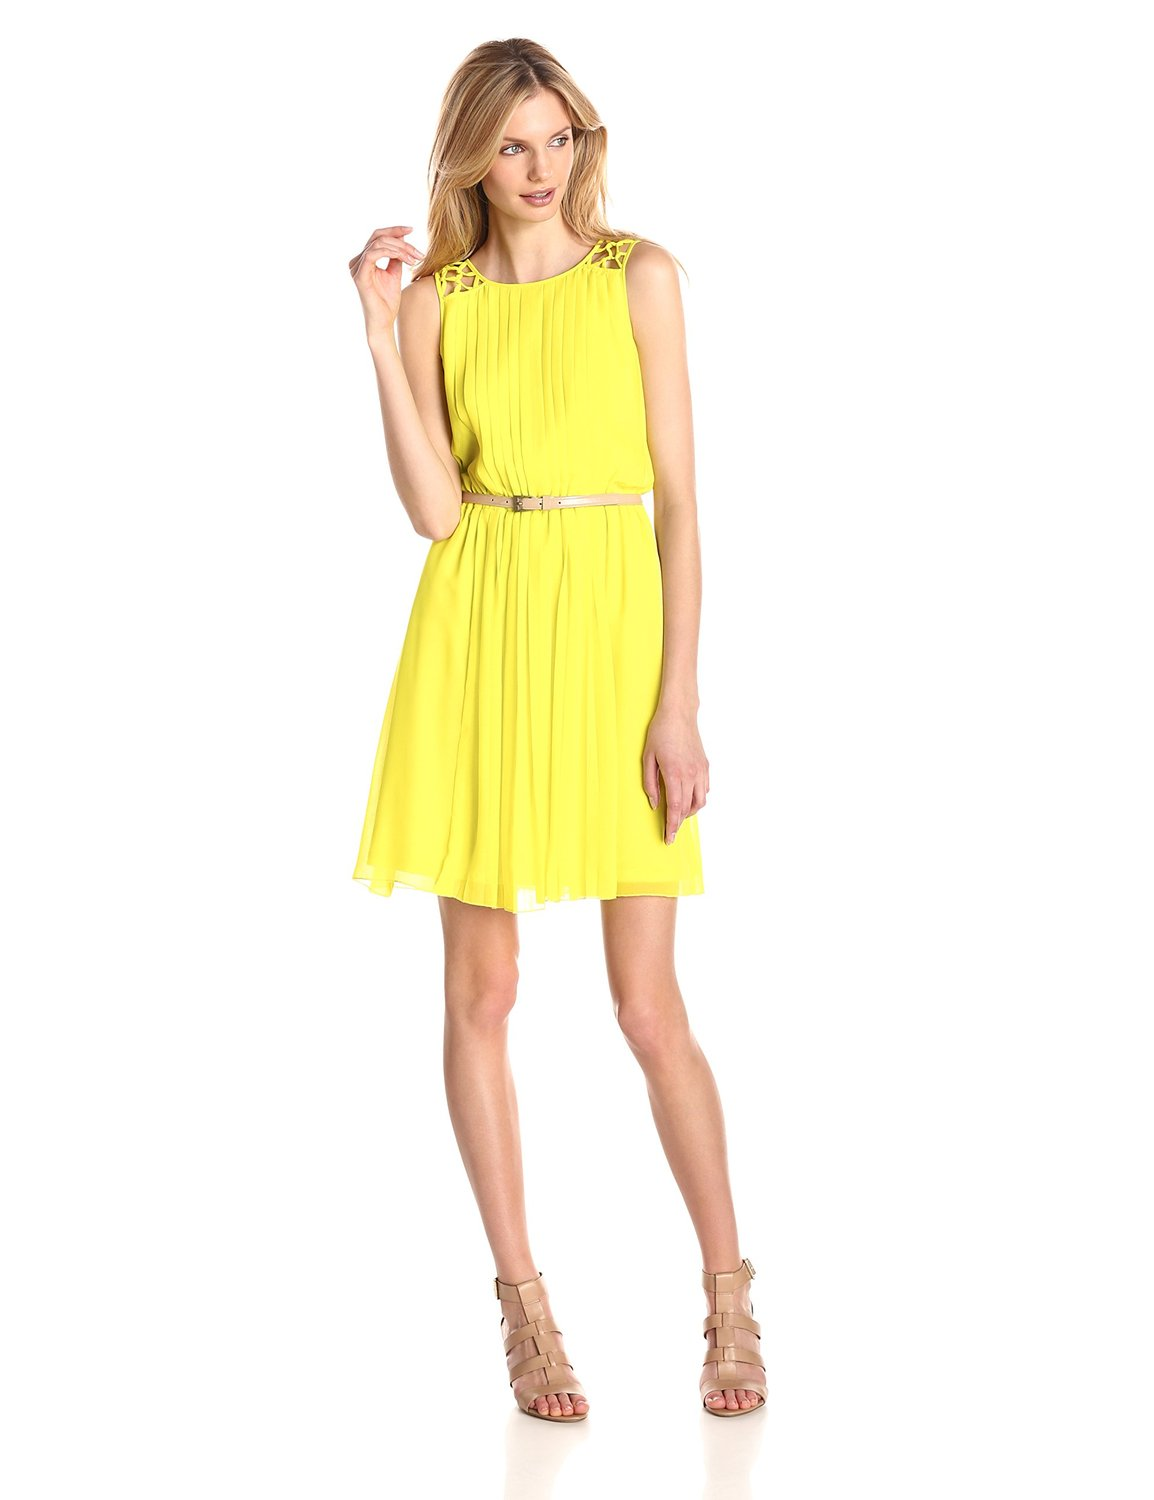 Citronelle yellow Jessica Simpson Women's Chiffon Pleated Dress with Lattice Shoulder Detail